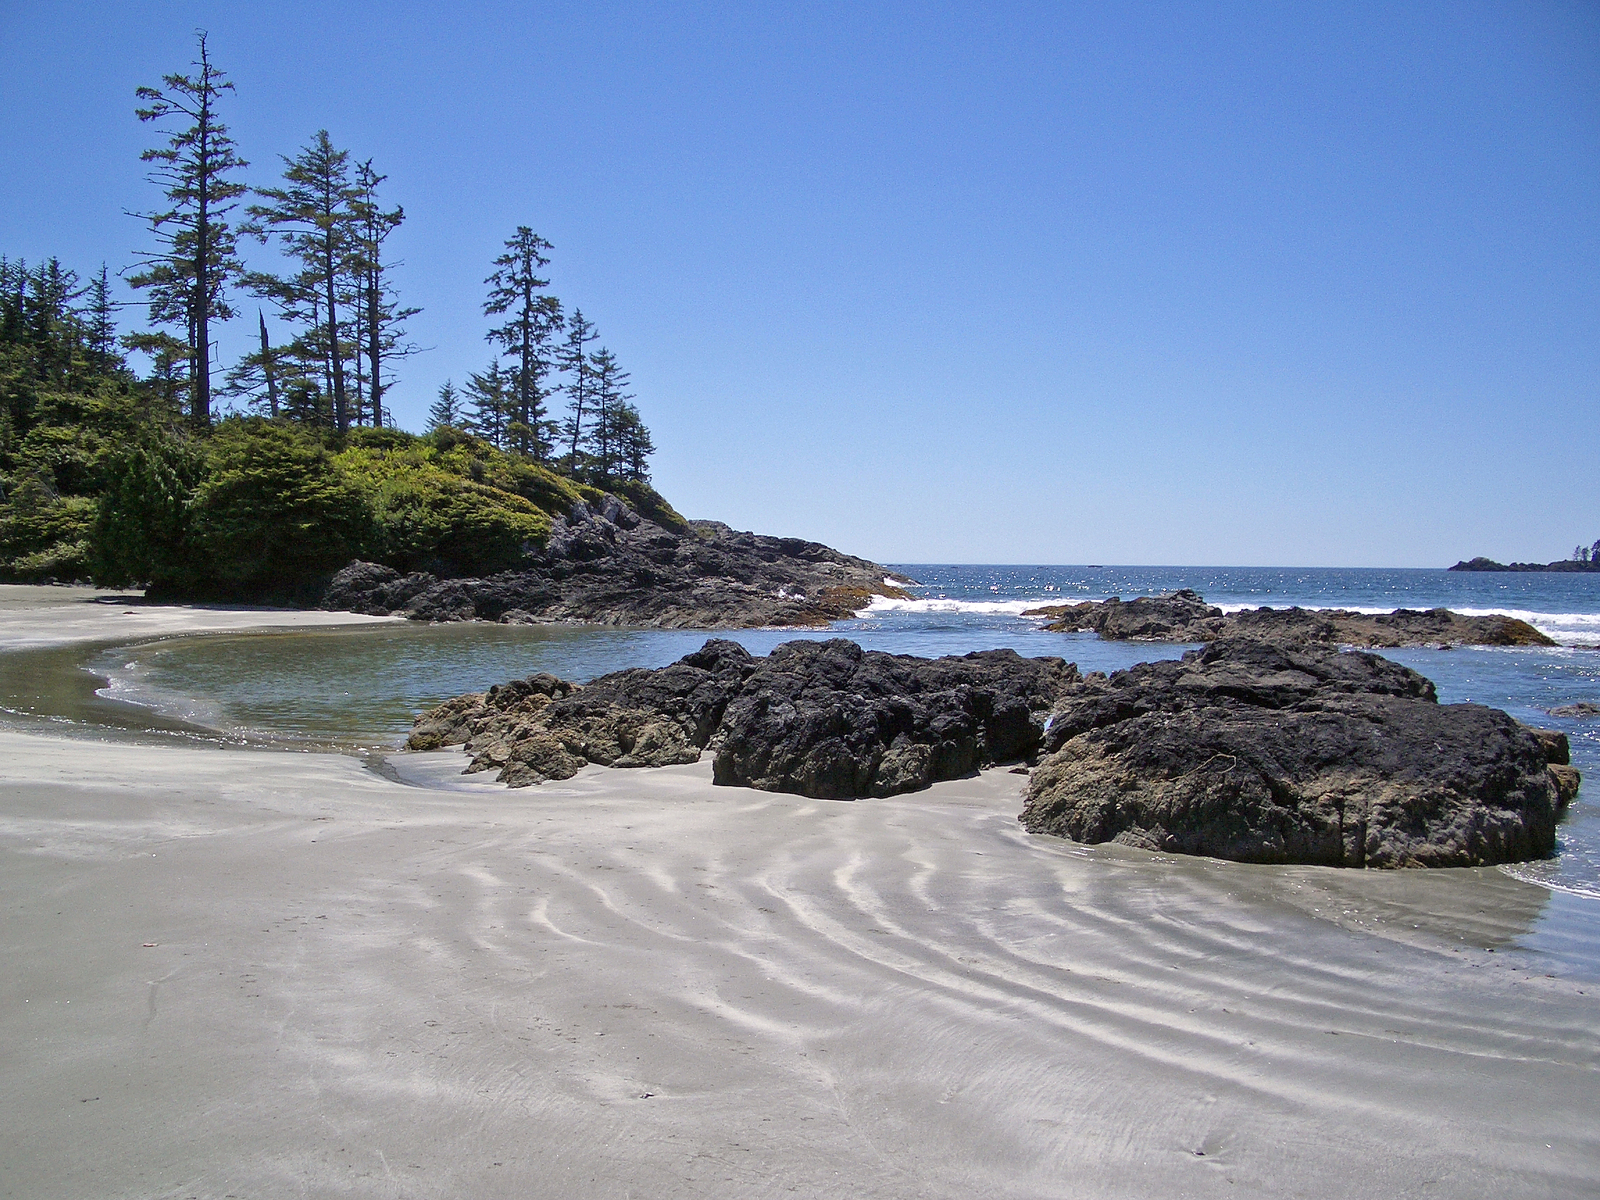 beach on the west coast of Vancouver Island